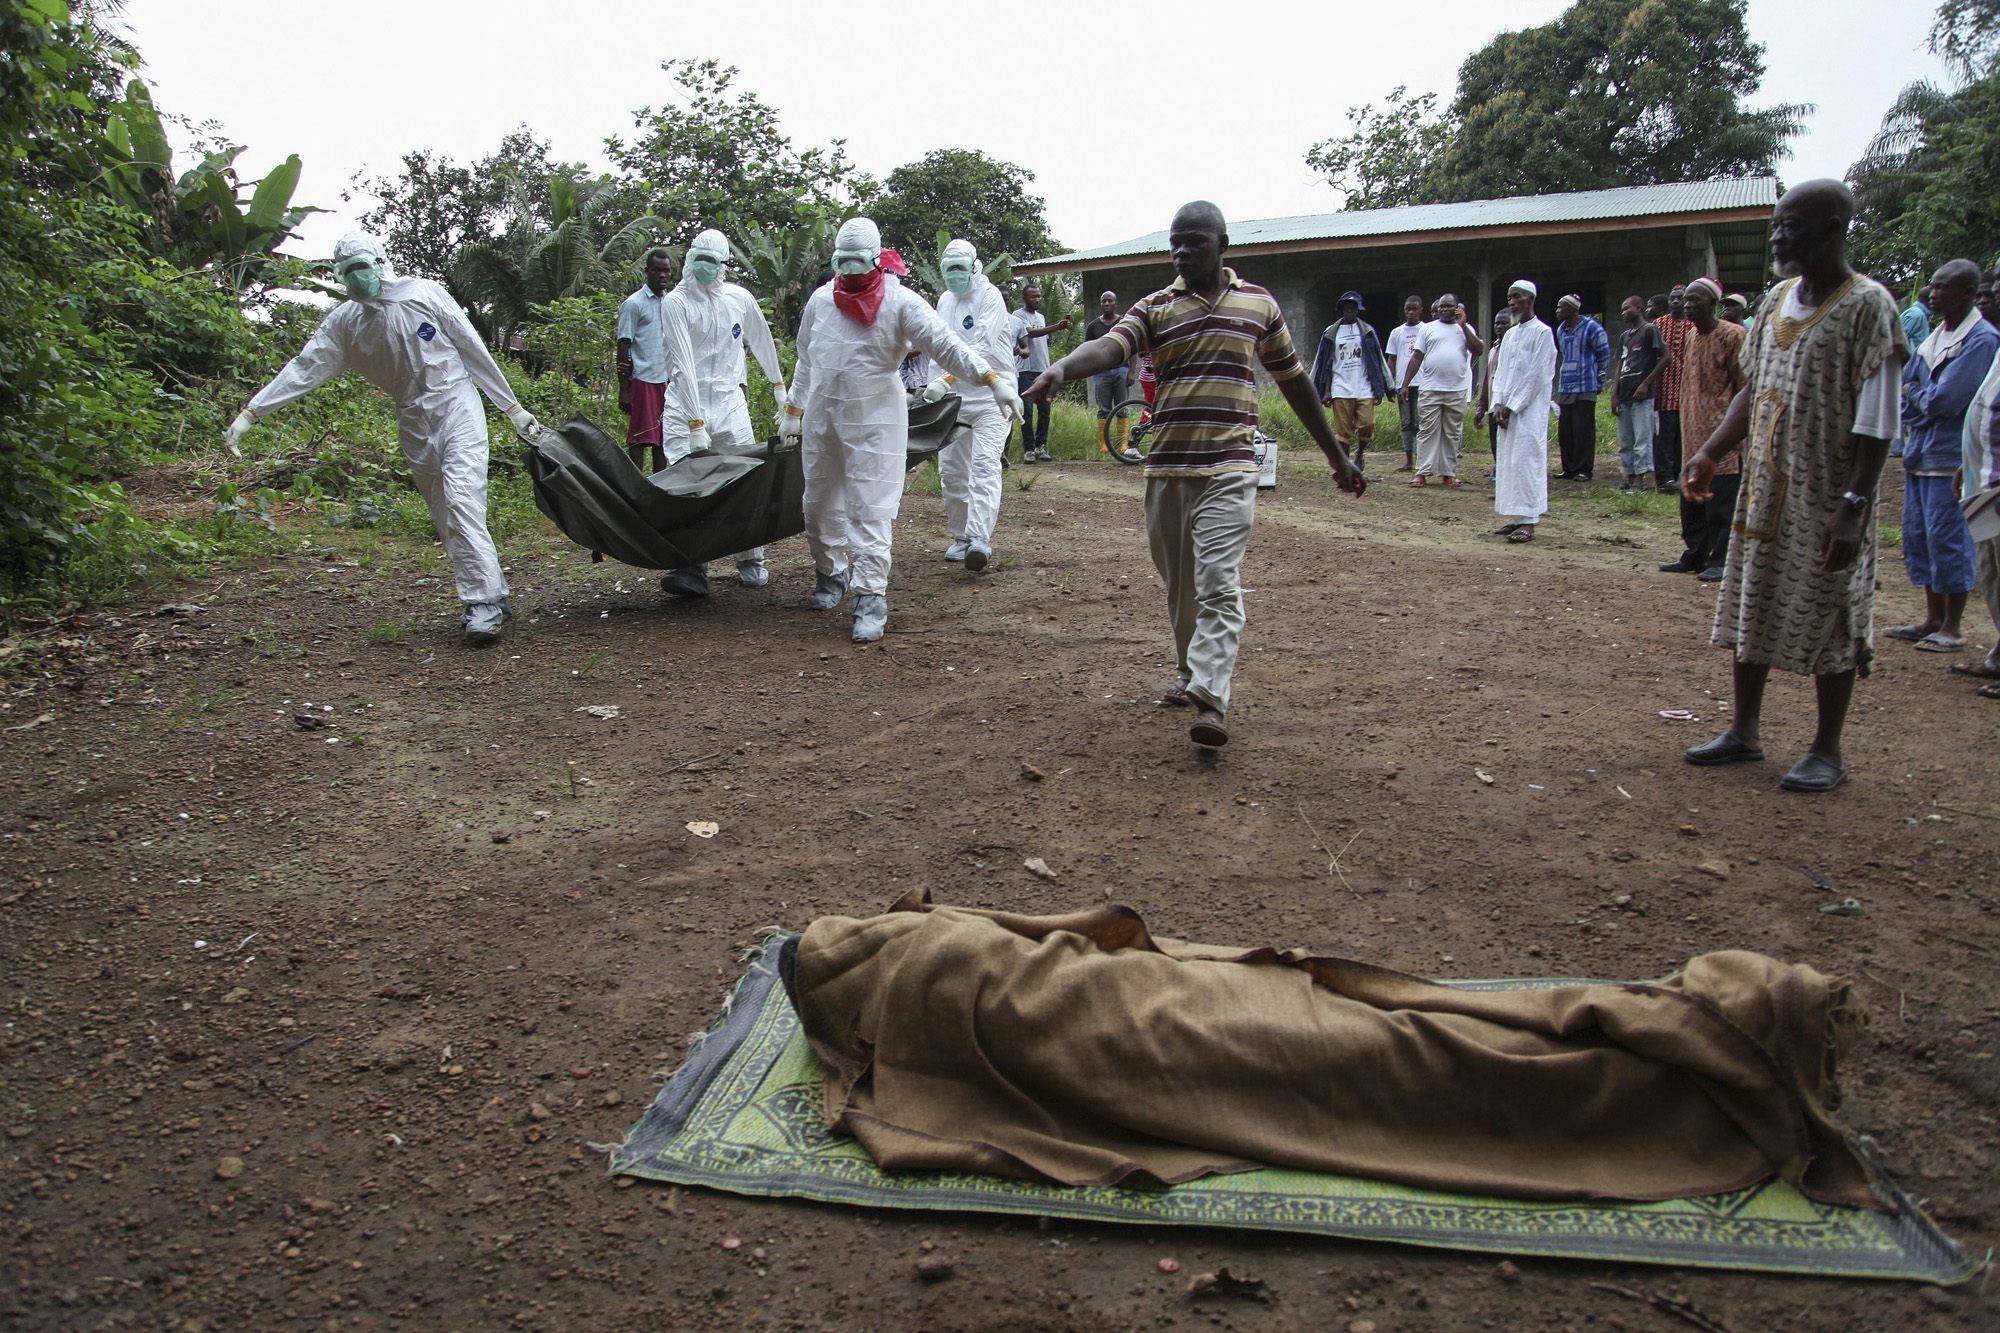 Liberian nurses carry the body of an Ebola victim on the way to burial in the Banjor community on the outskirts of Monrovia, Liberia, Aug. 6, 2014.